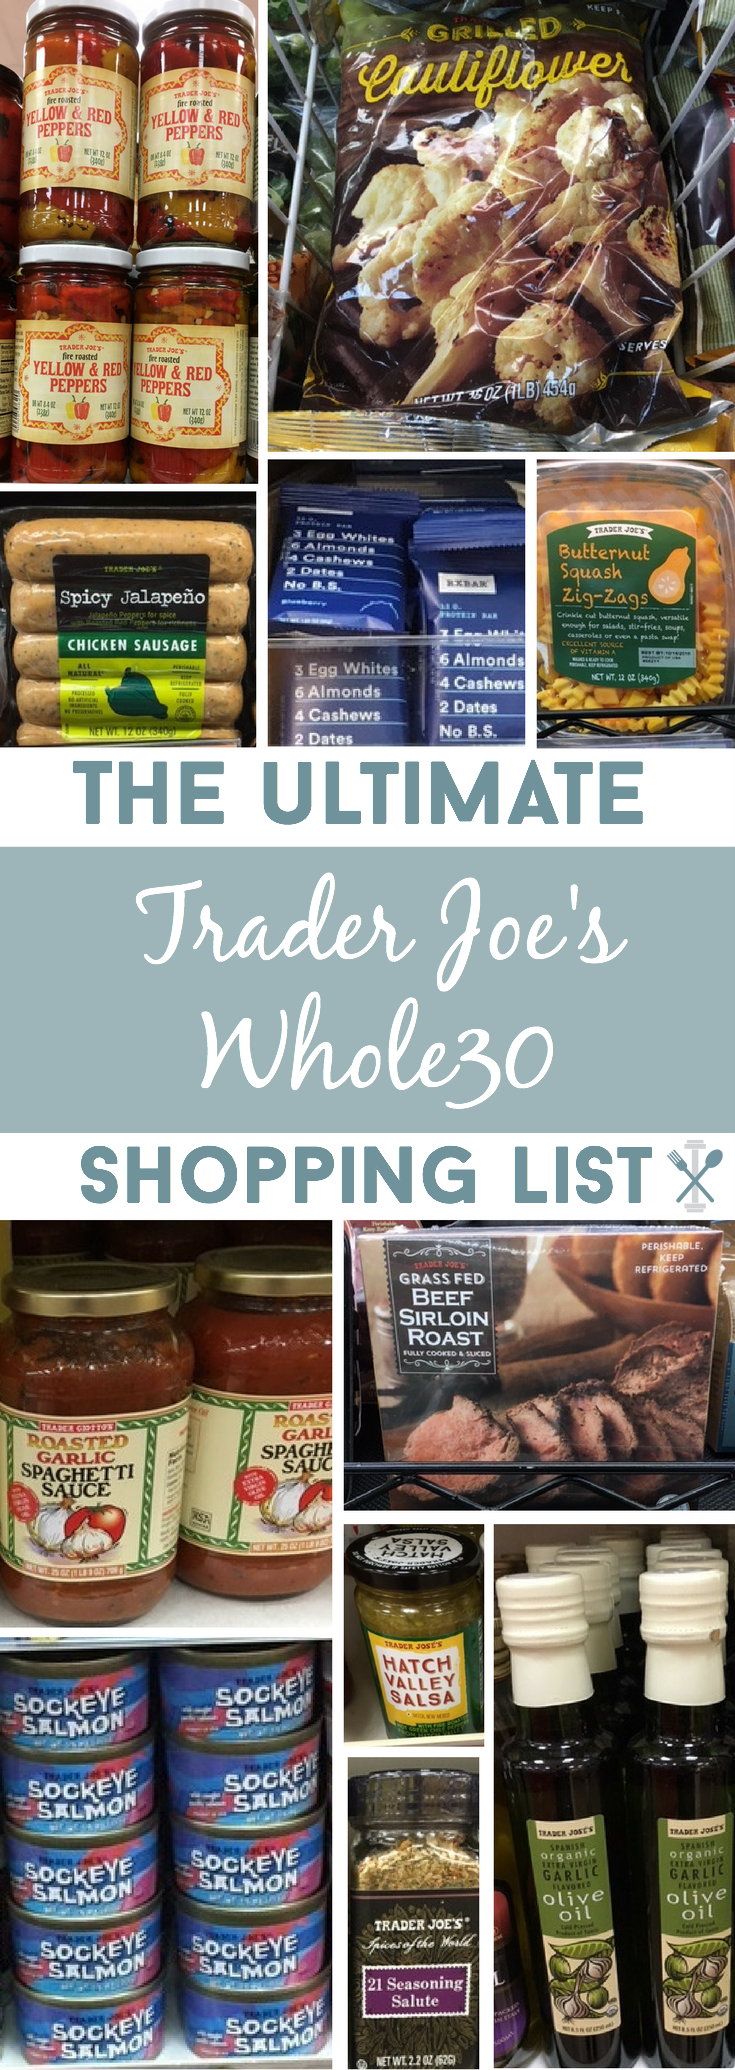 ALL the Whole30 compliant food you must buy at Trader Joe's. A HUGE list of fresh product, packaged foods, and cooking essentials for The Whole30 Challenge!